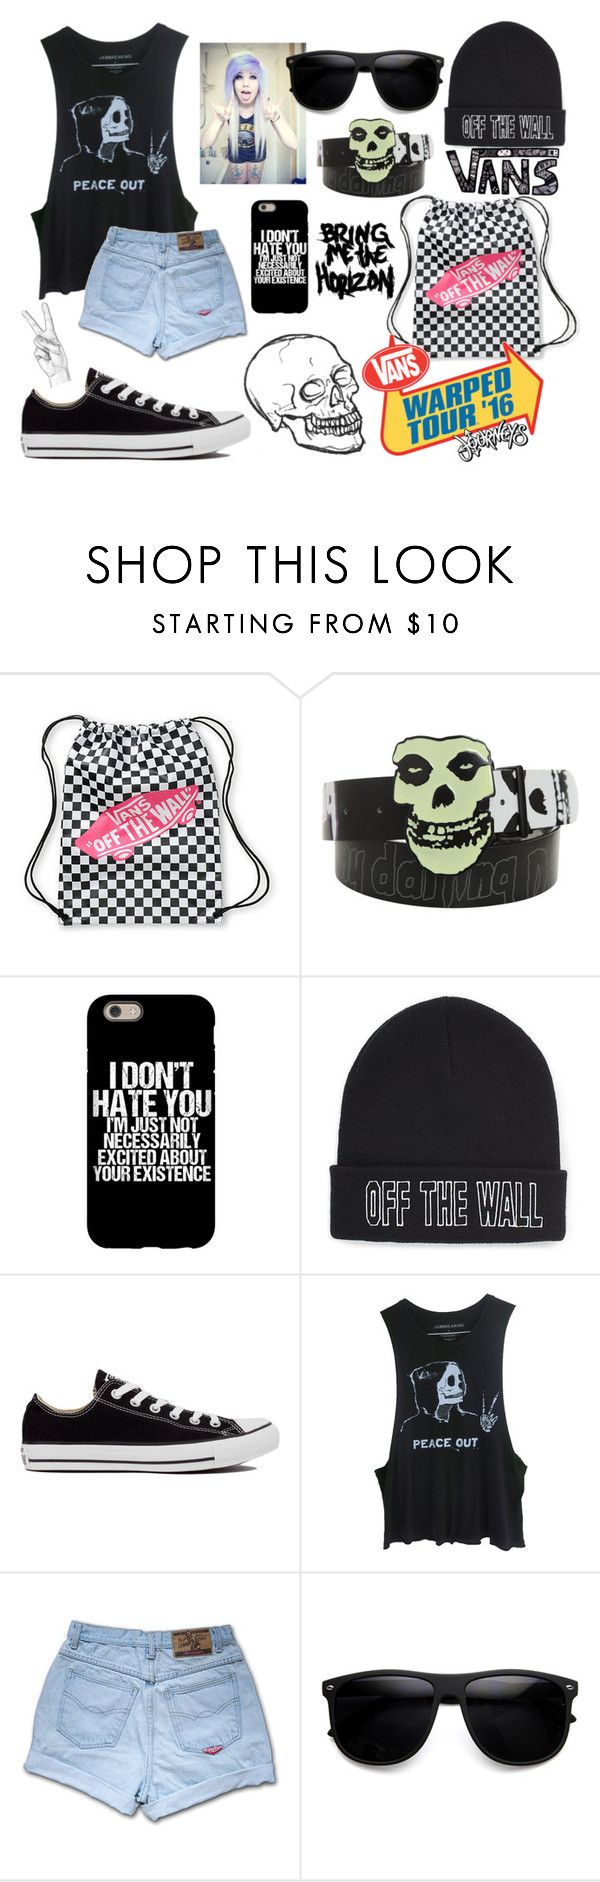 """""""Warped Tour Outfit #10"""" by cutemonsterbvb ❤ liked on Polyvore featuring Vans and Converse"""